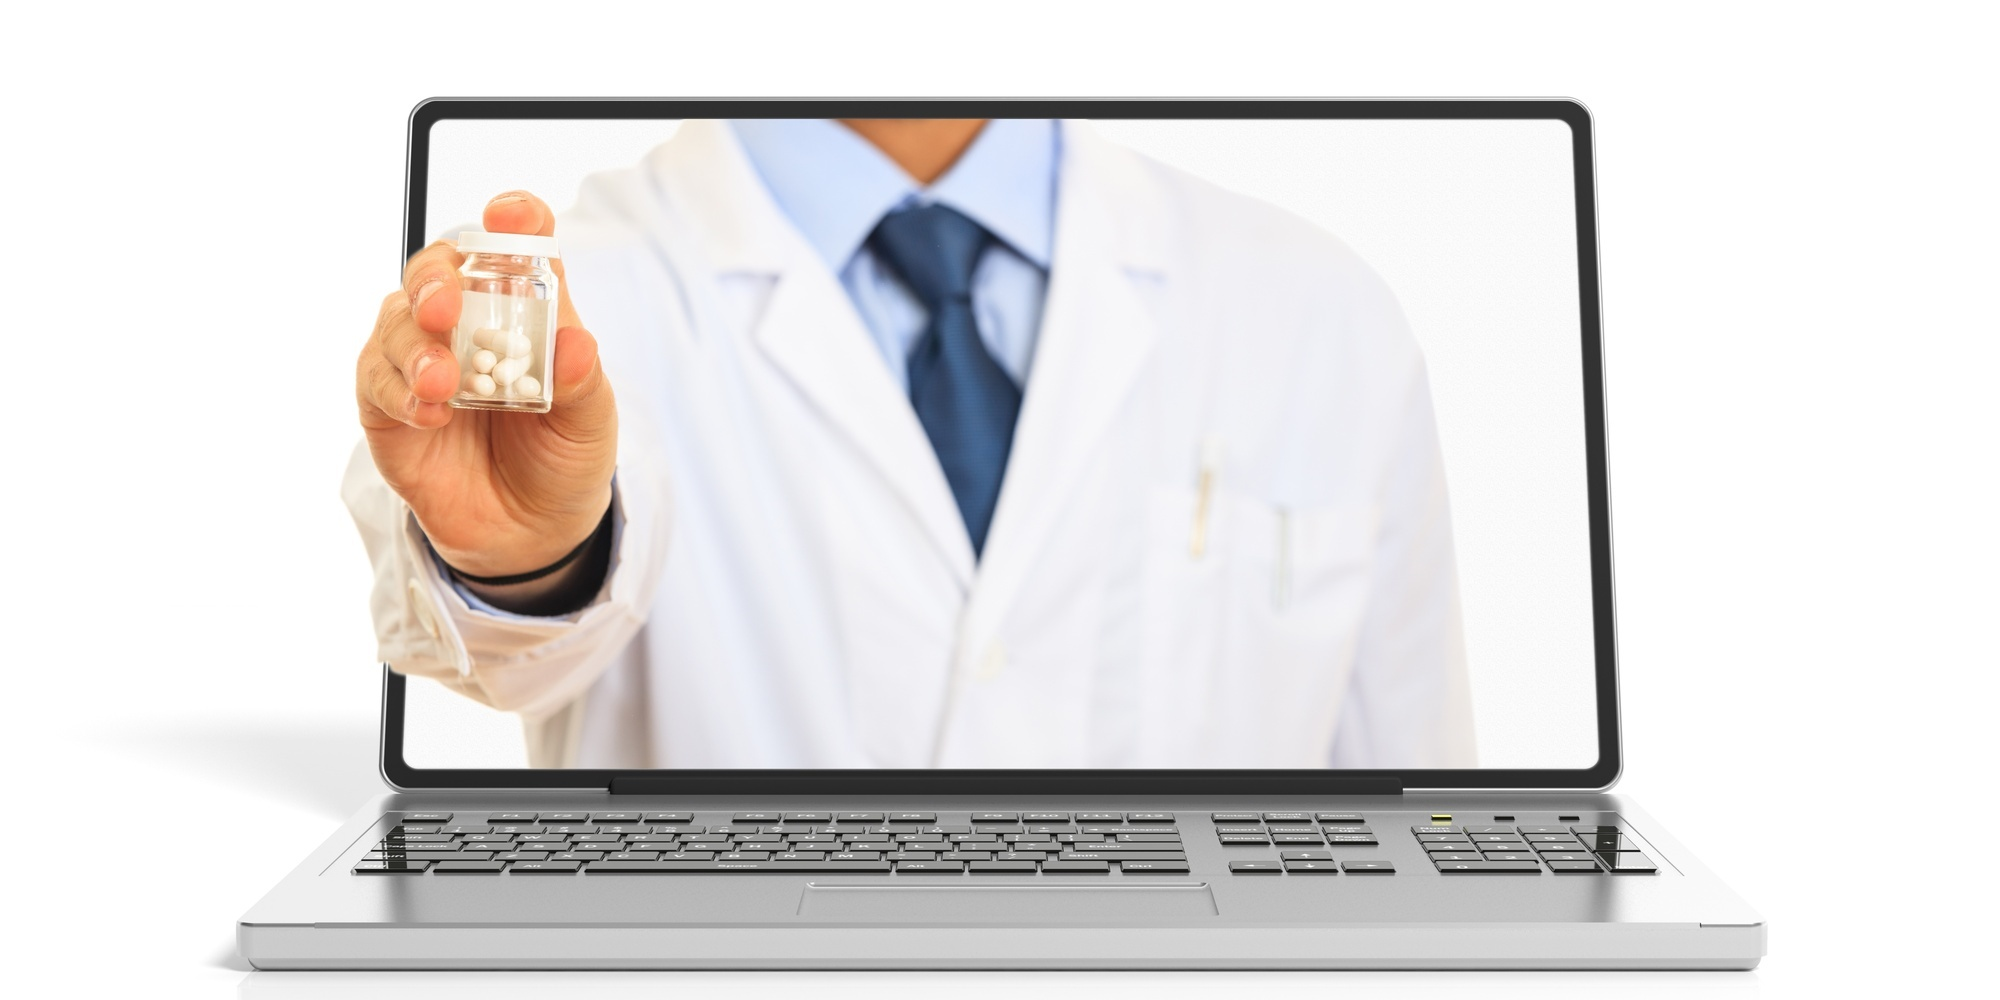 Online Pharmacy: How to Safely Purchase Medicine Online